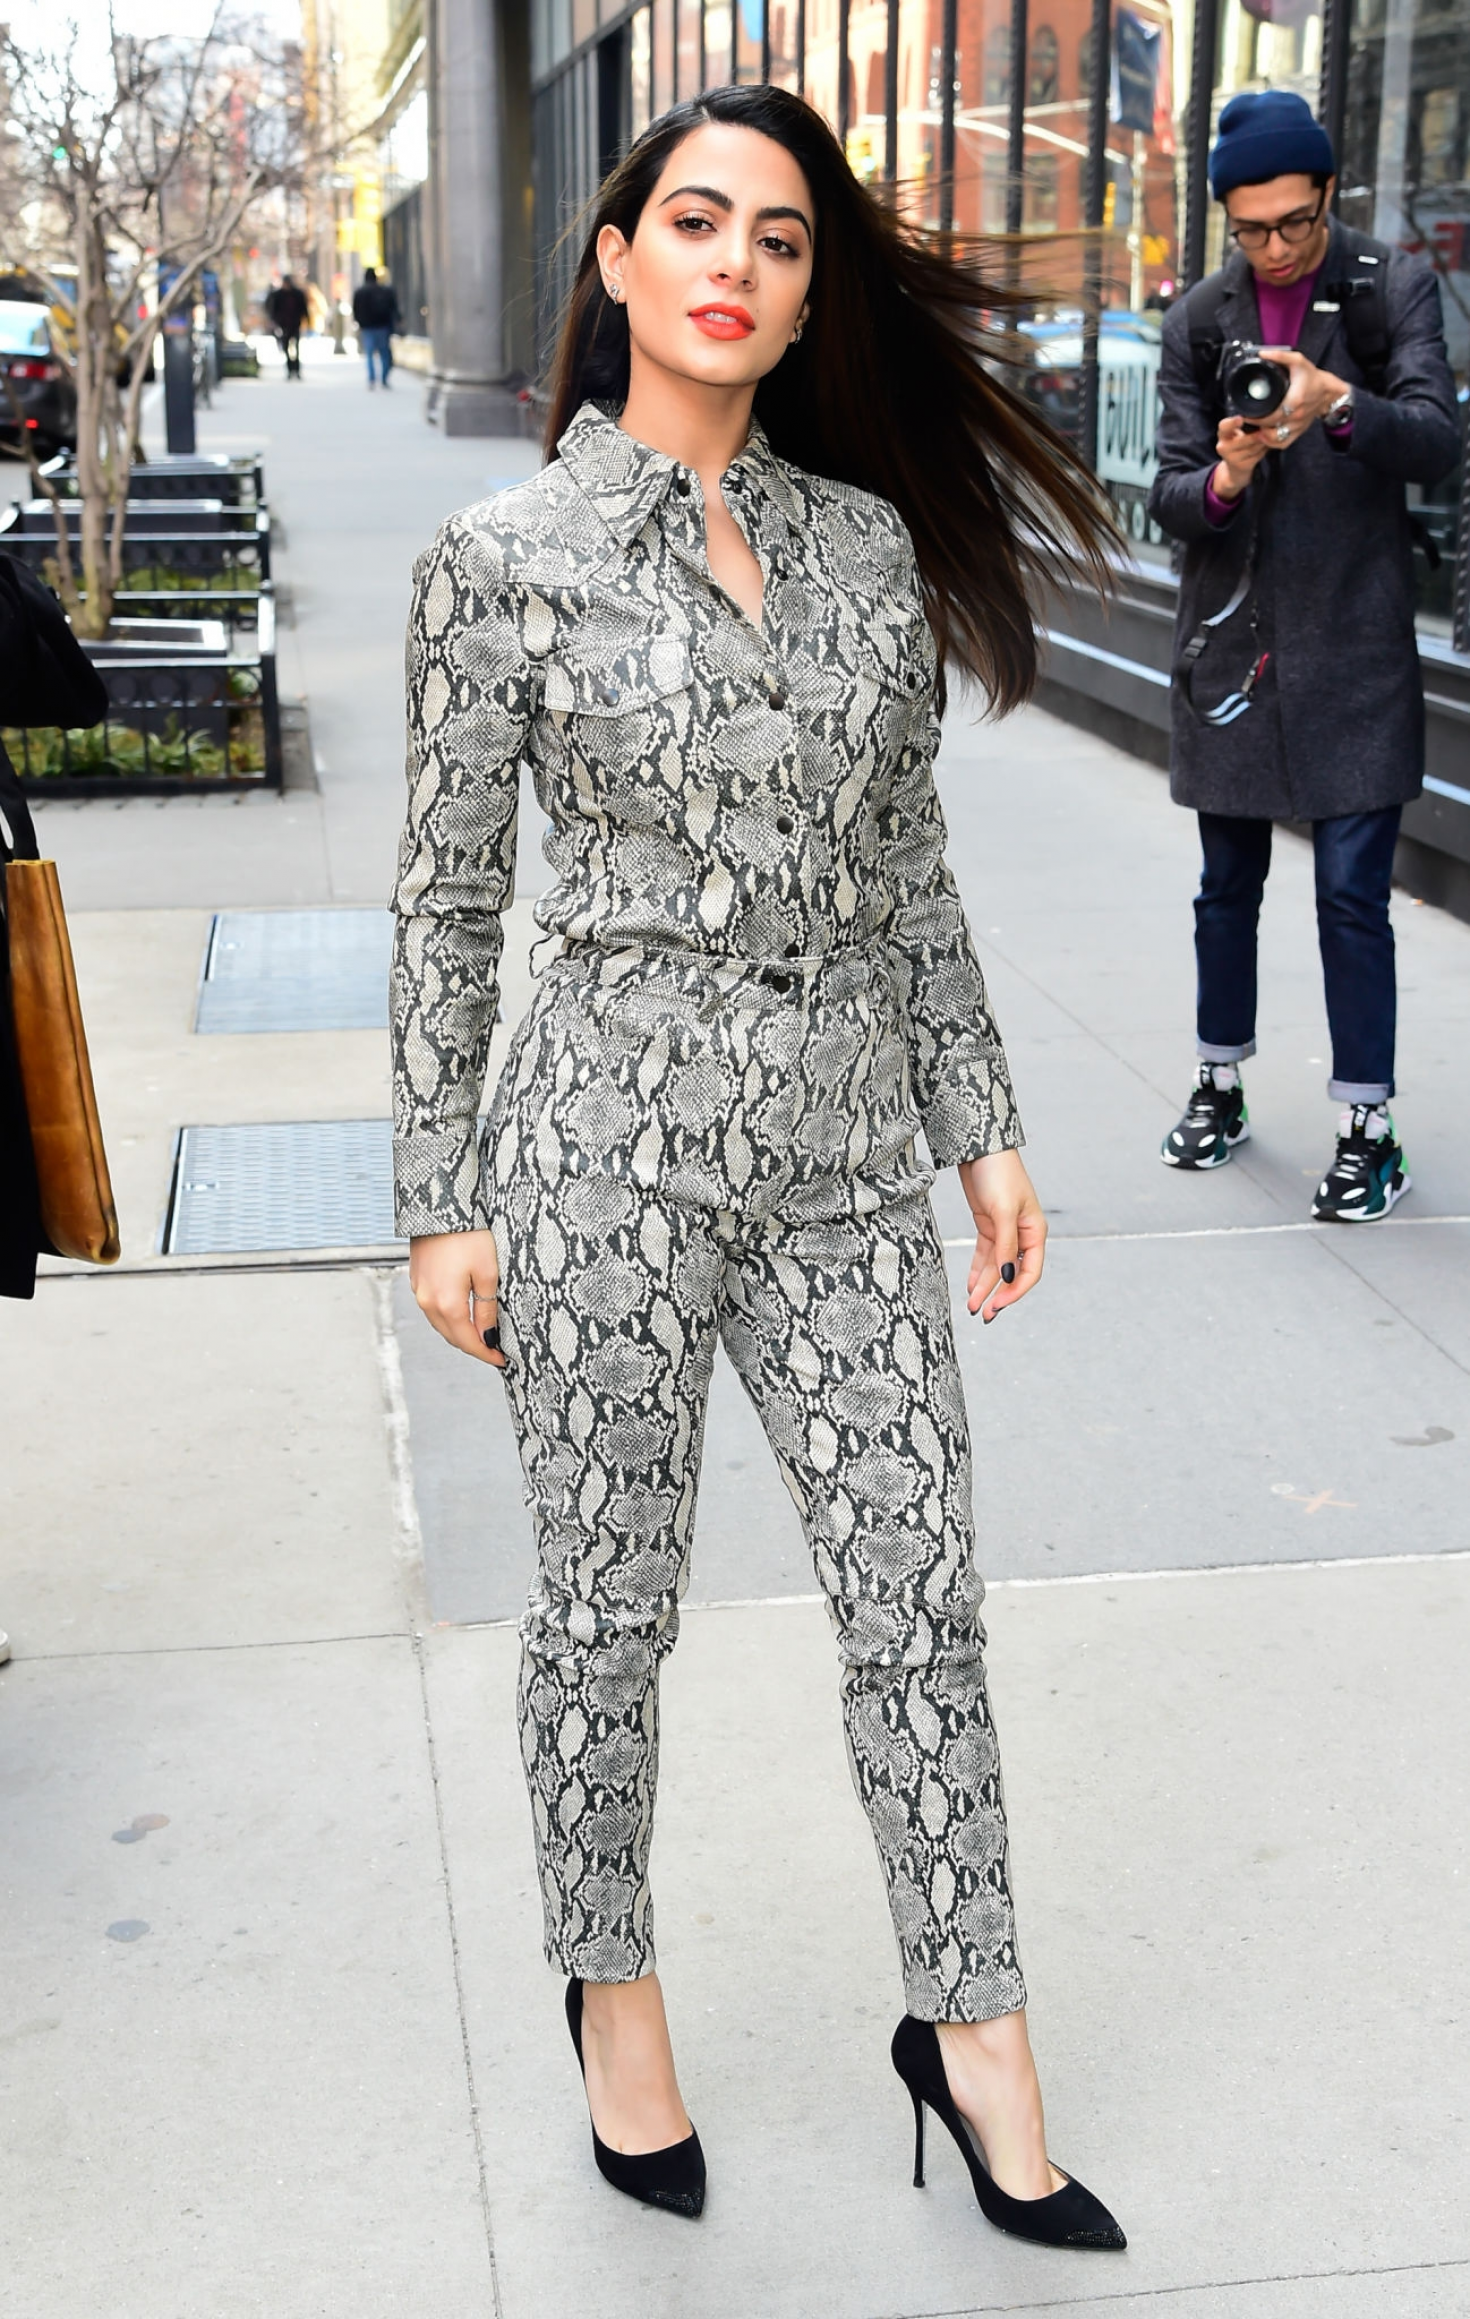 Emeraude Toubia - Arrives at AOL Build in New York City